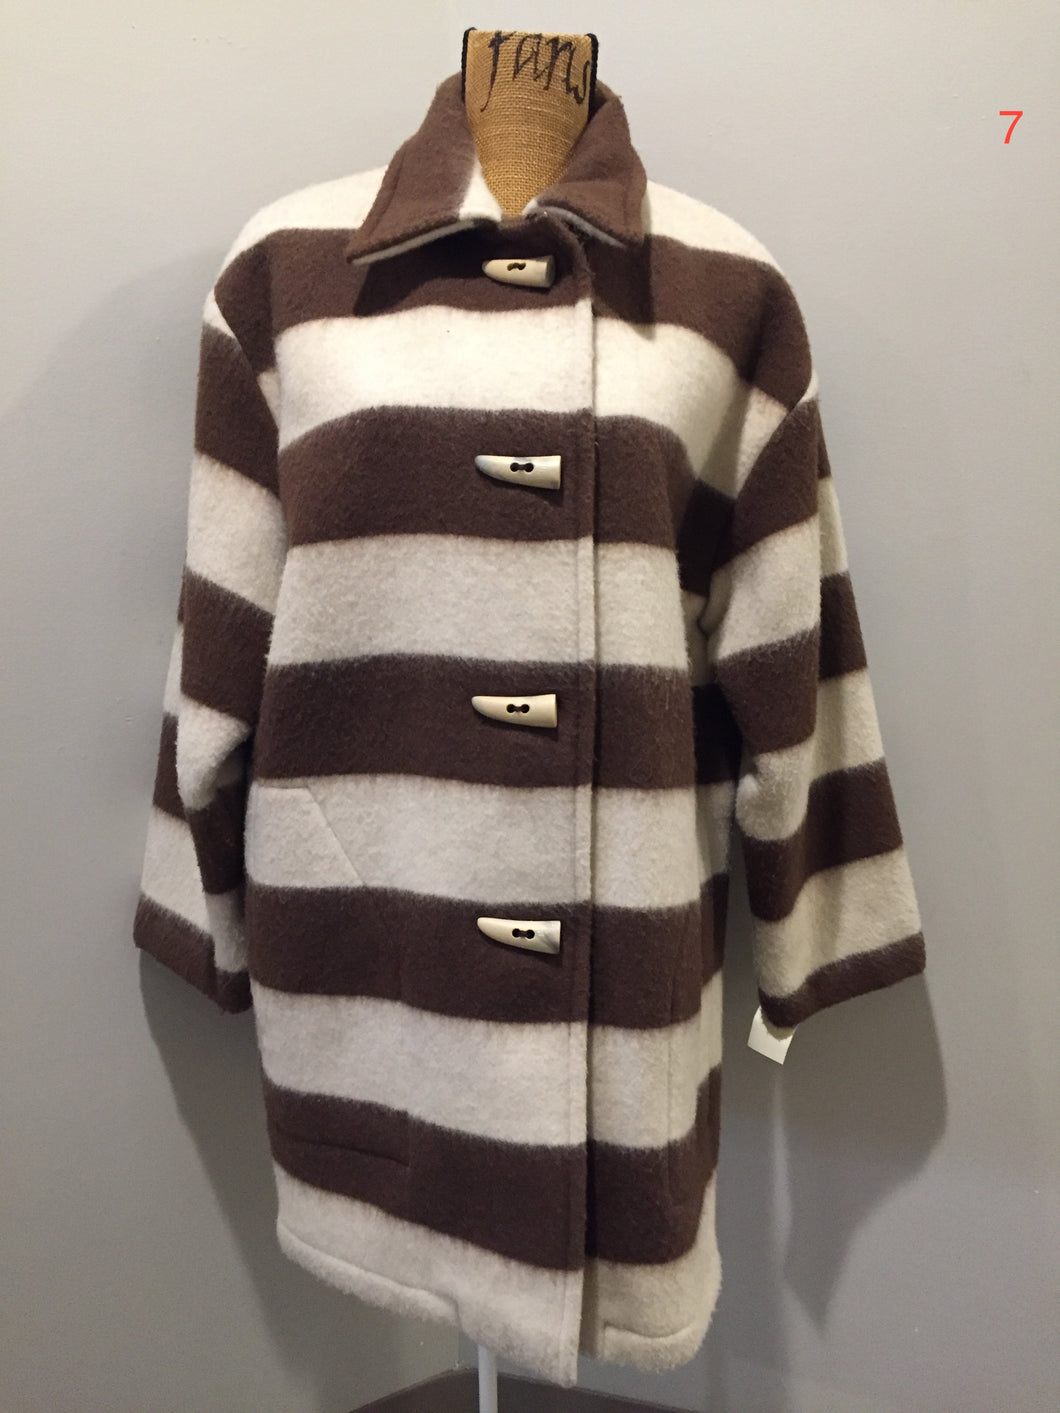 Kingspier Vintage - Linda Lundstrom white and brown striped wool parka with wooden toggles and patch pockets. Made in Canada. Size medium.